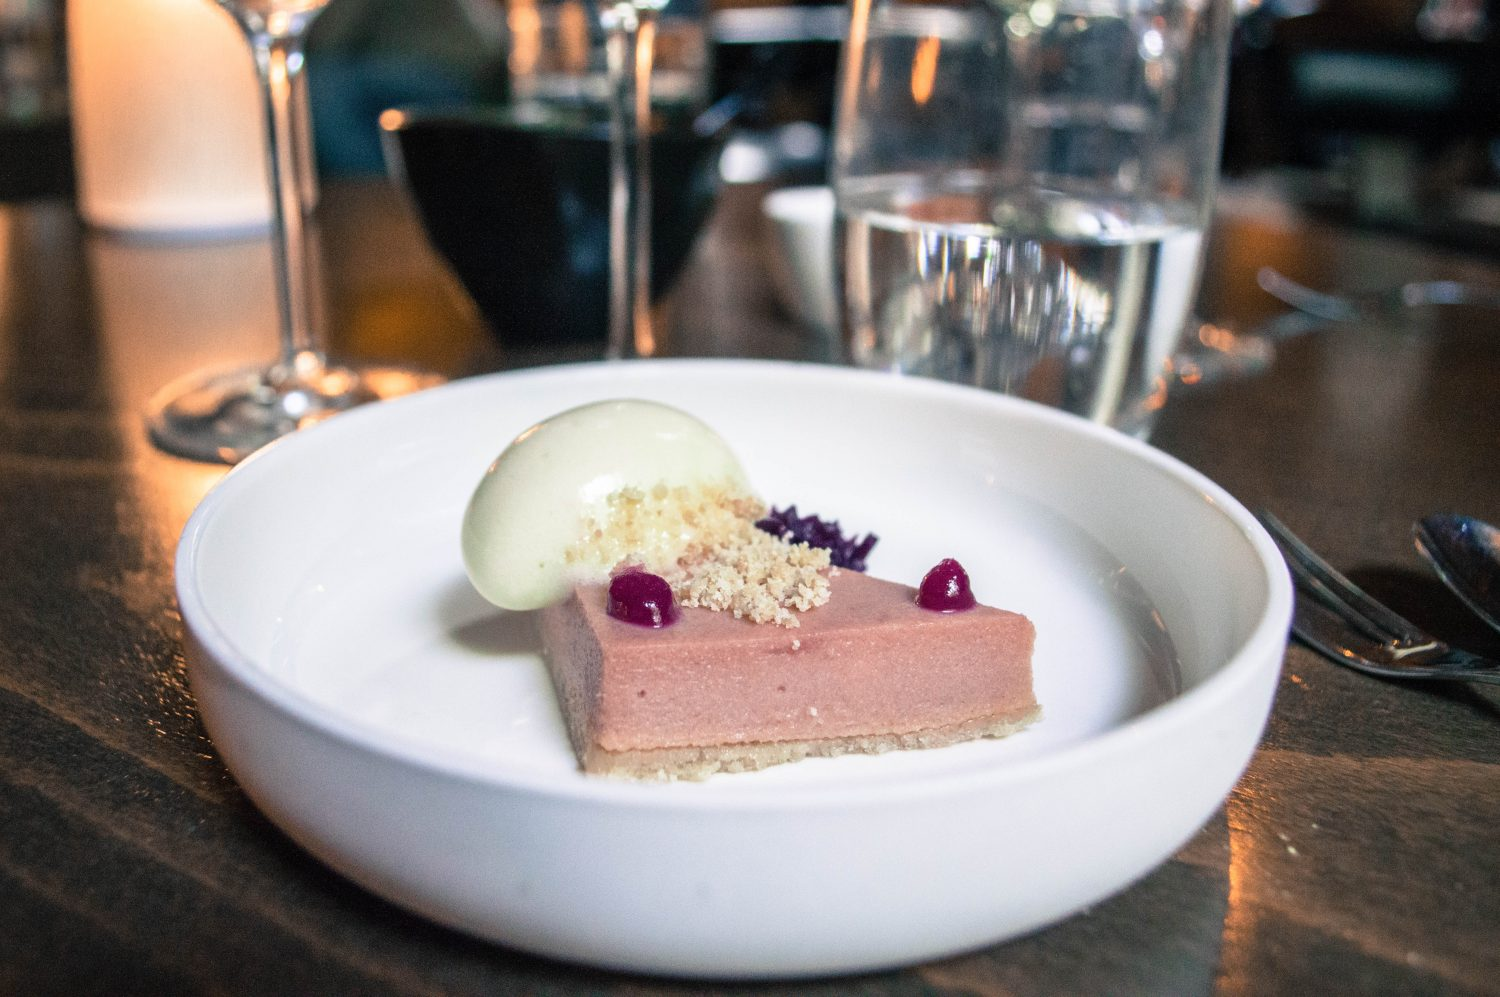 Wow such an epic and indulgent food experience in Amsterdam! High wine at the Dylan is an alcoholic take on afternoon tea, and consists of four wines paired with four delicious appetizers. A must try for any foodie visiting Amsterdam!